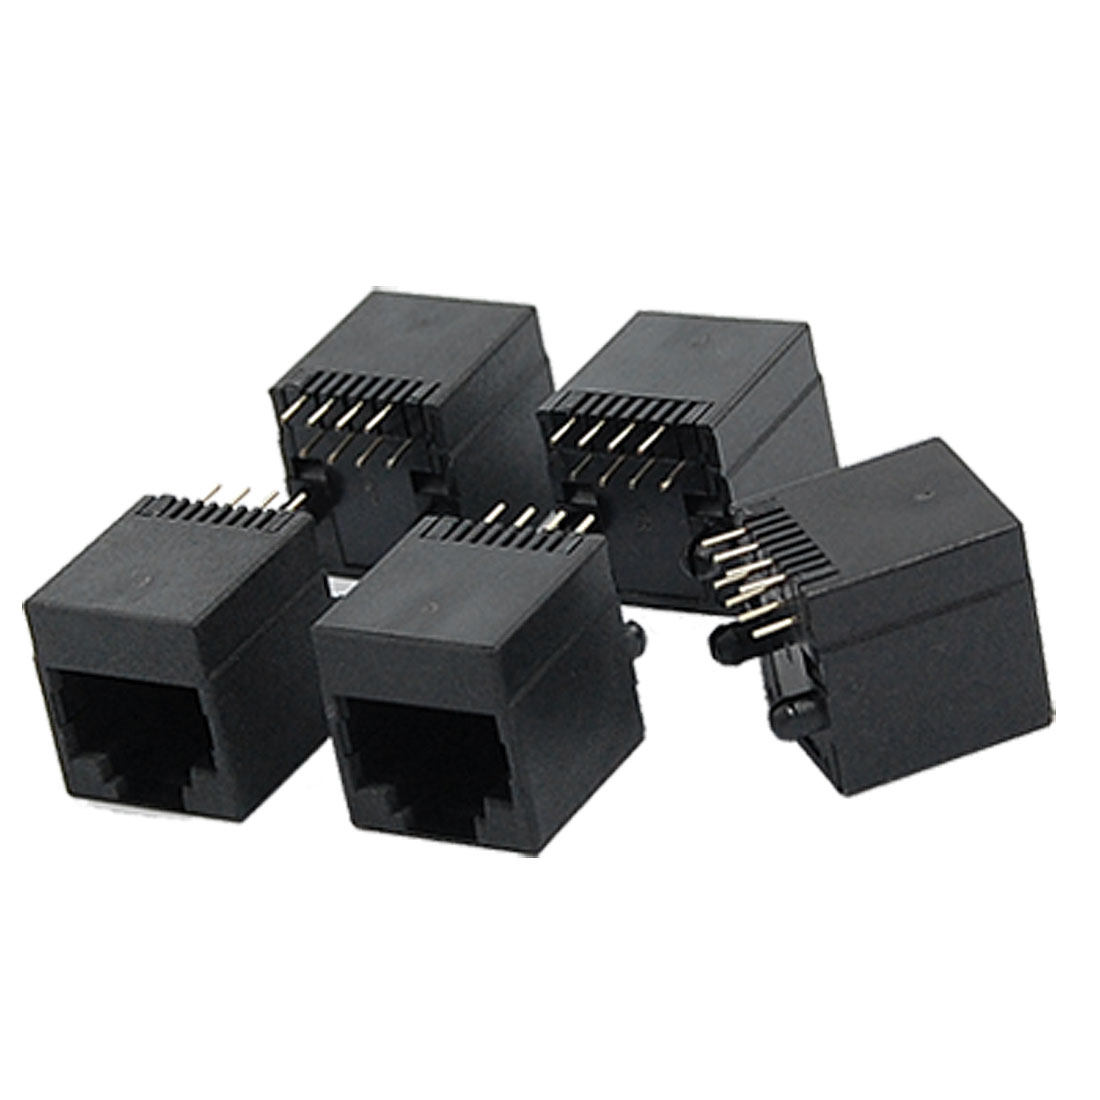 5224-8P8C Unshielded 8 Round Pin RJ45 Network PCB Connectors 5 Pcs